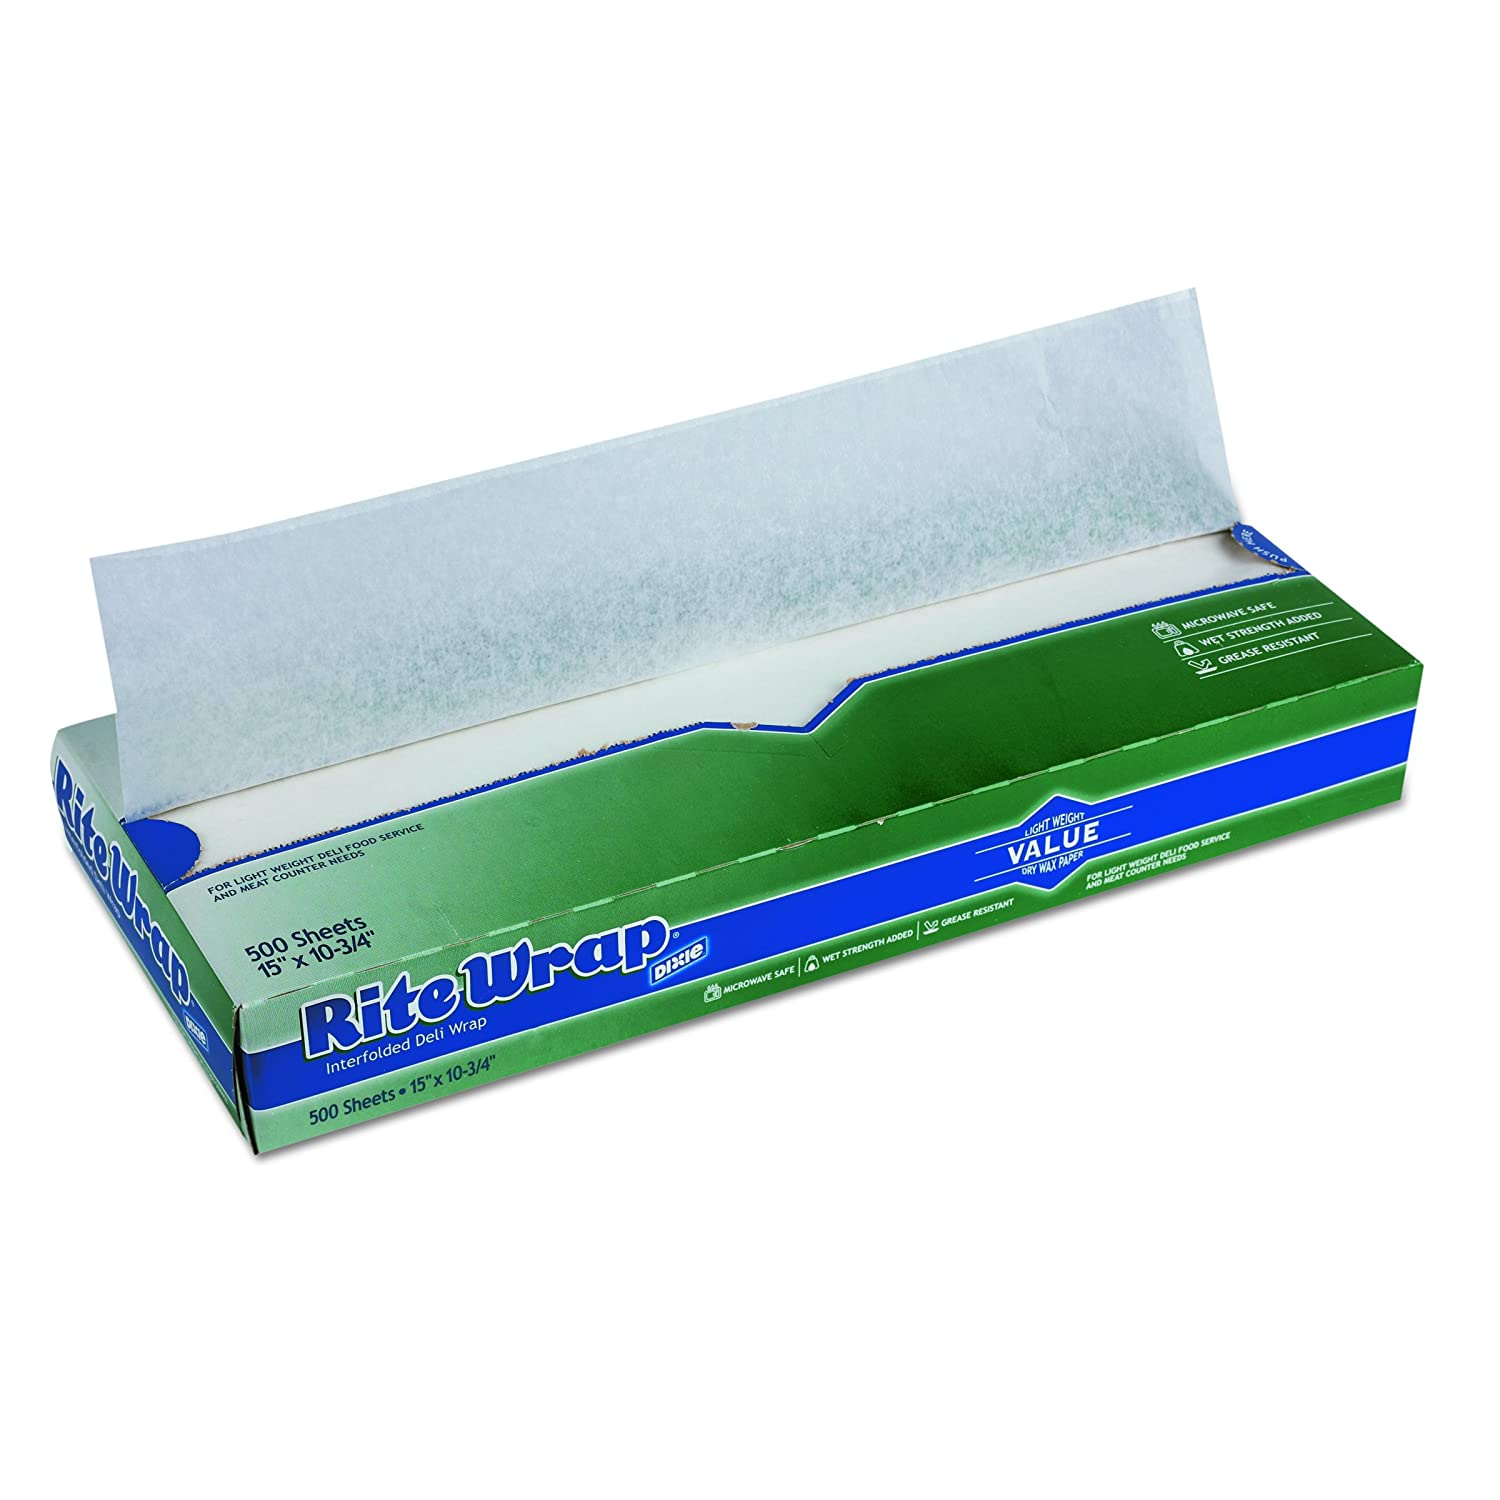 "Rite-Wrap, RW156, White, Light-Weight Interfolded Dry Wax Deli Paper 15"" Width x 10.75"" Length by GP PRO (Georgia-Pacific) (Case of 12 Boxes, 500 Sheets Per Box)"